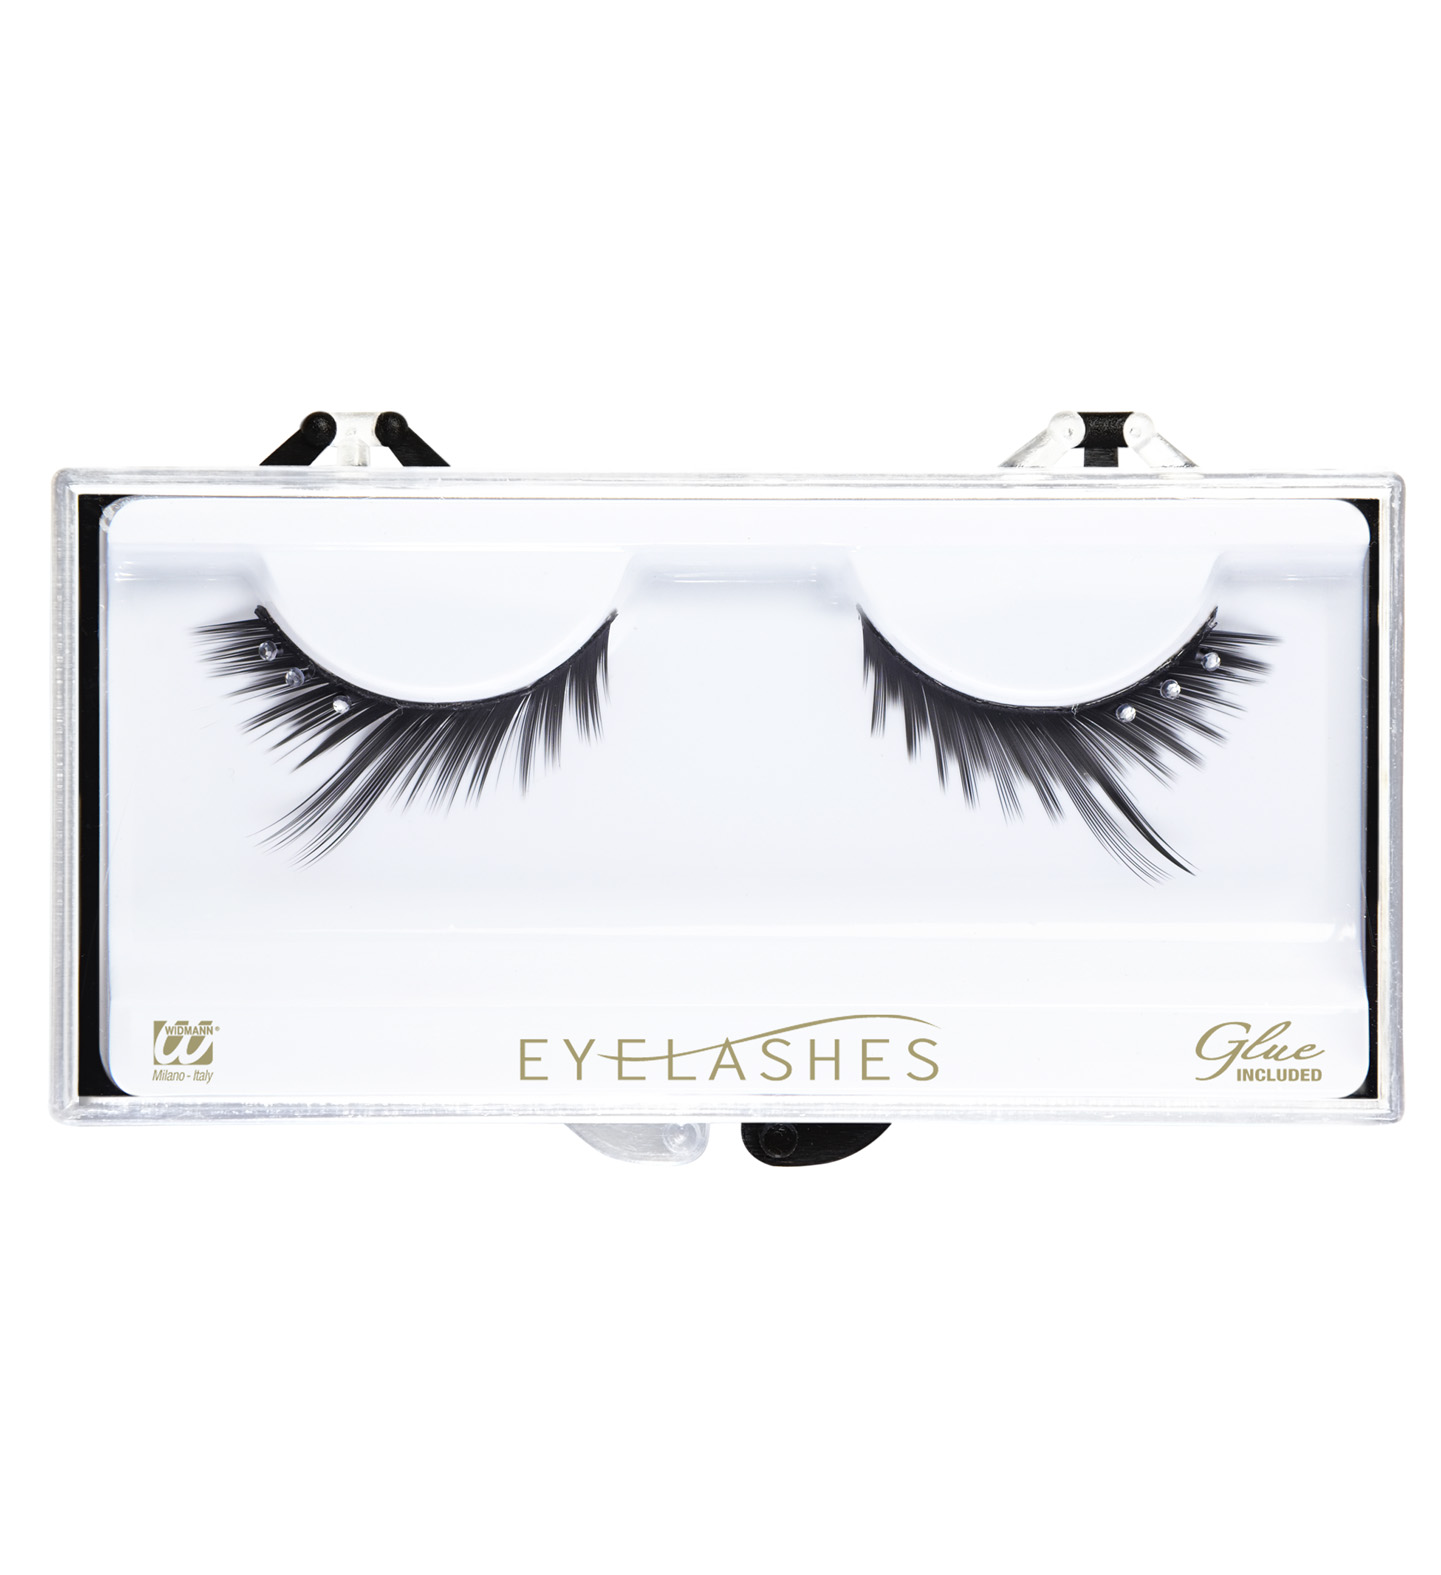 Eyelashes Black Peaked Strass Makeup Cosmetics